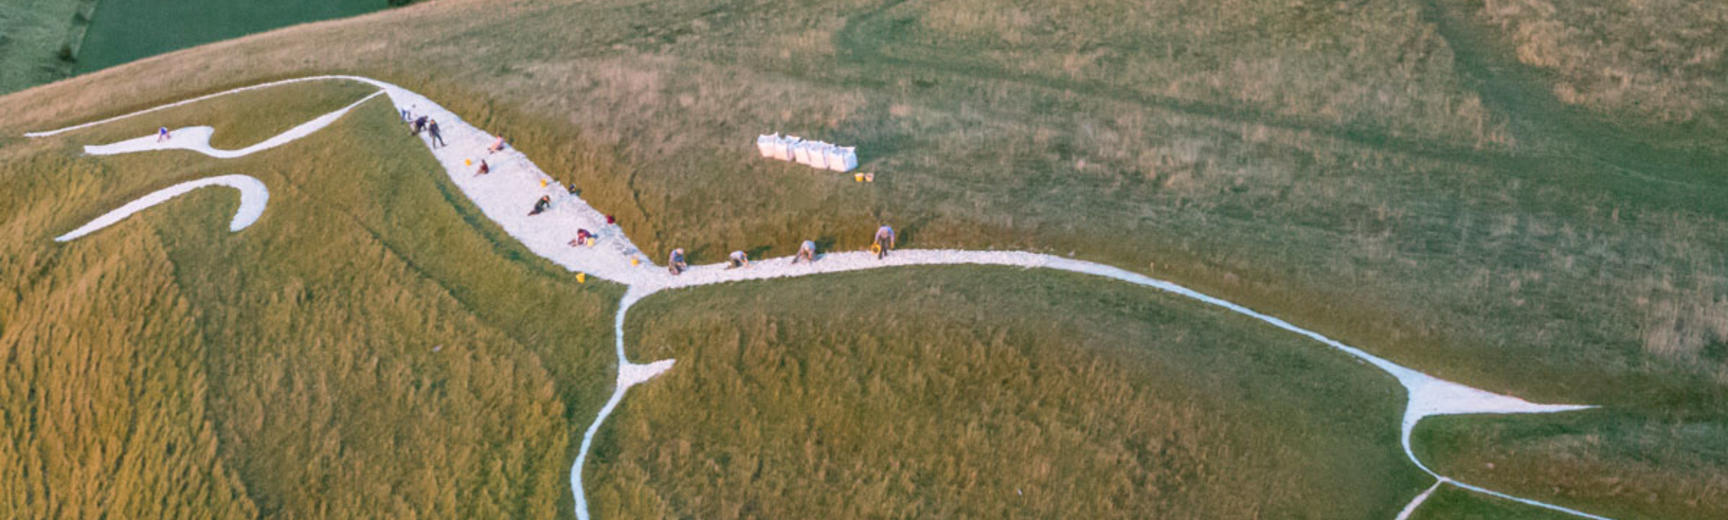 An image of White Horse Hill, National Trust, Uffington, Oxfordshire for Ashmolean Museum online talk Land of White Horse by David Miles